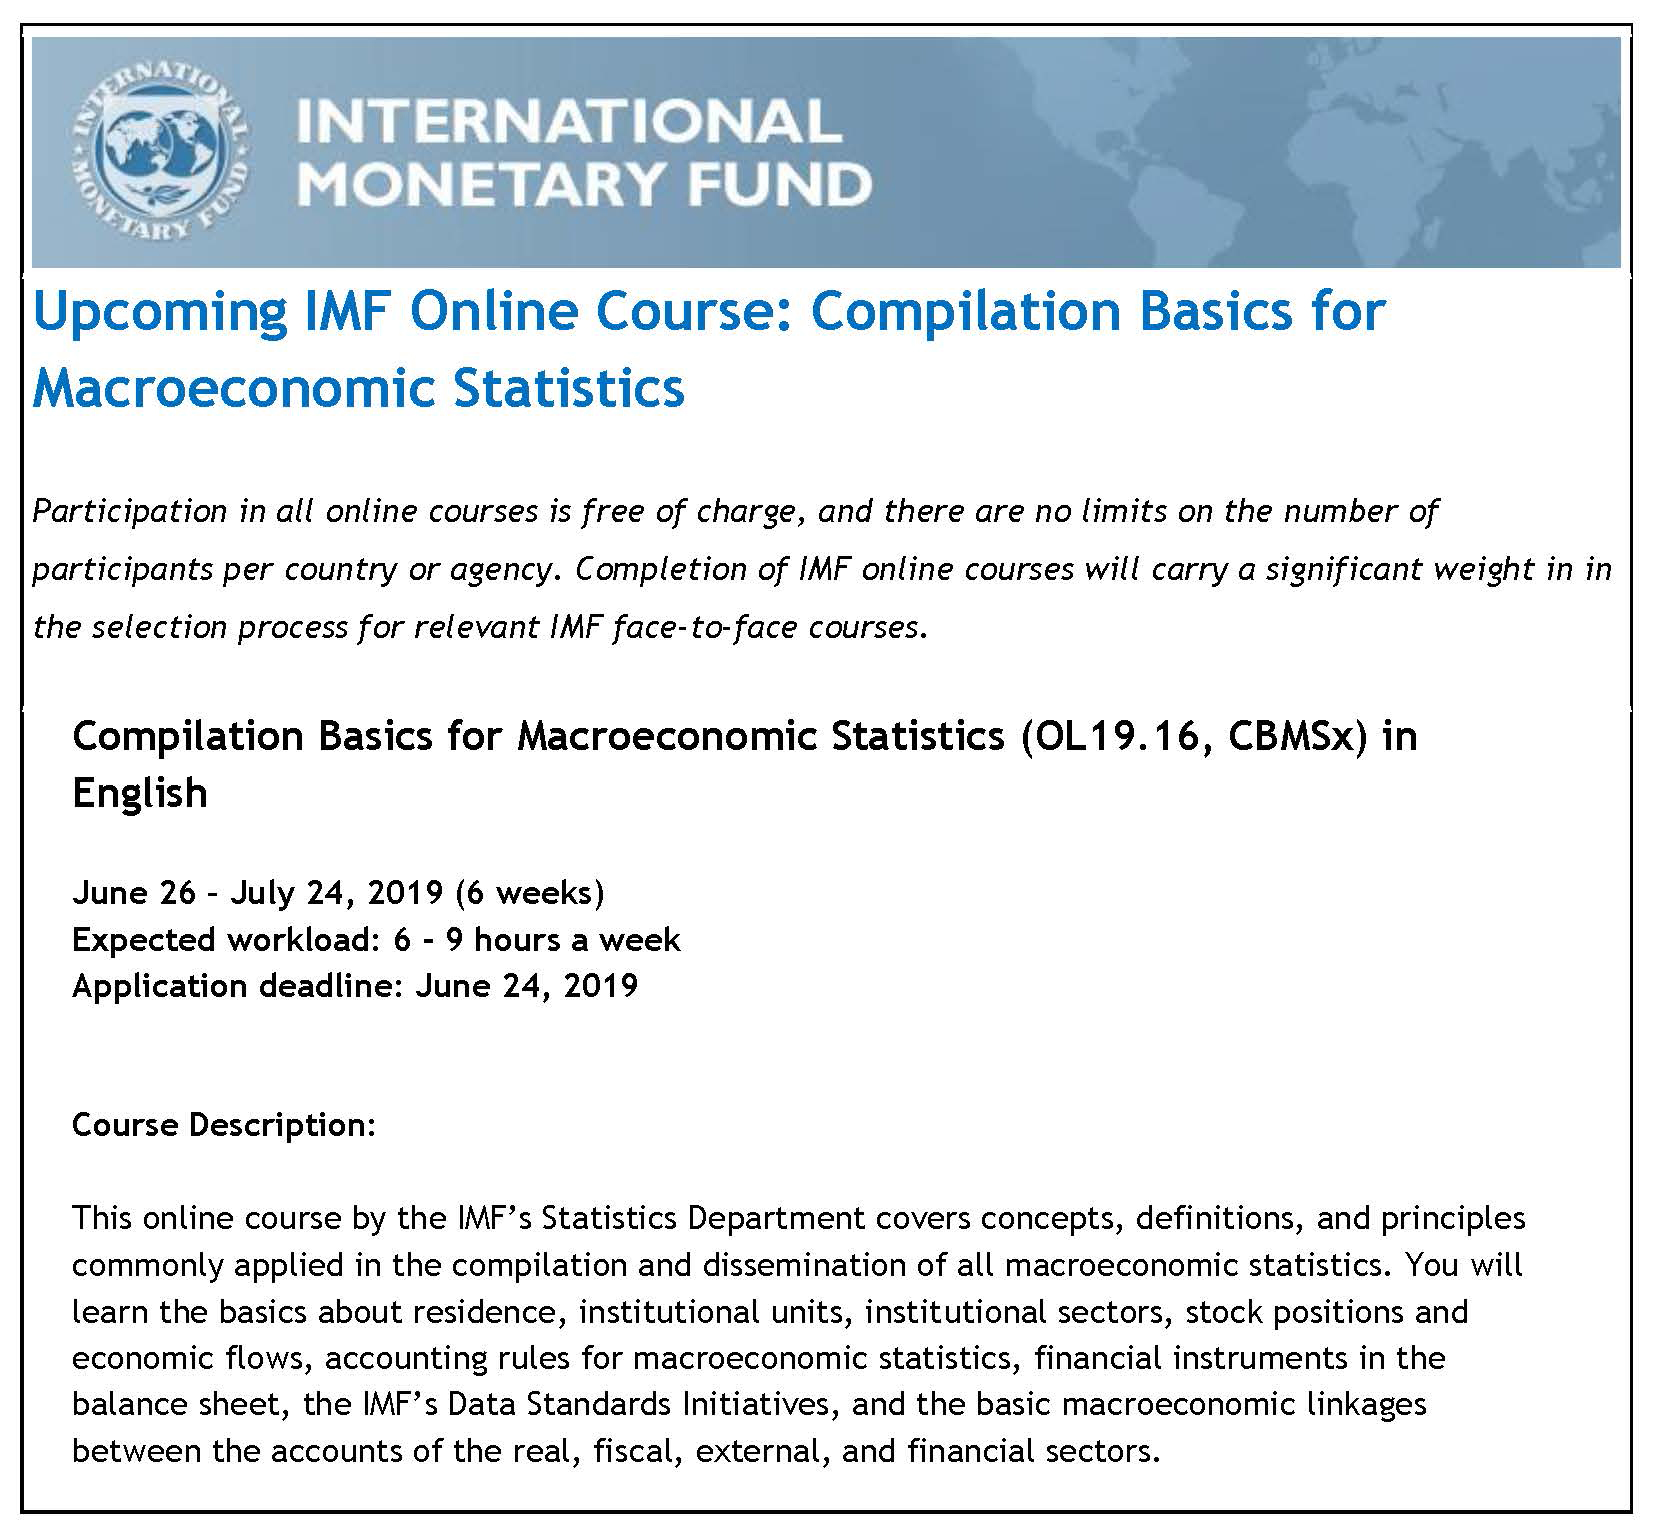 Upcoming IMF Online Course